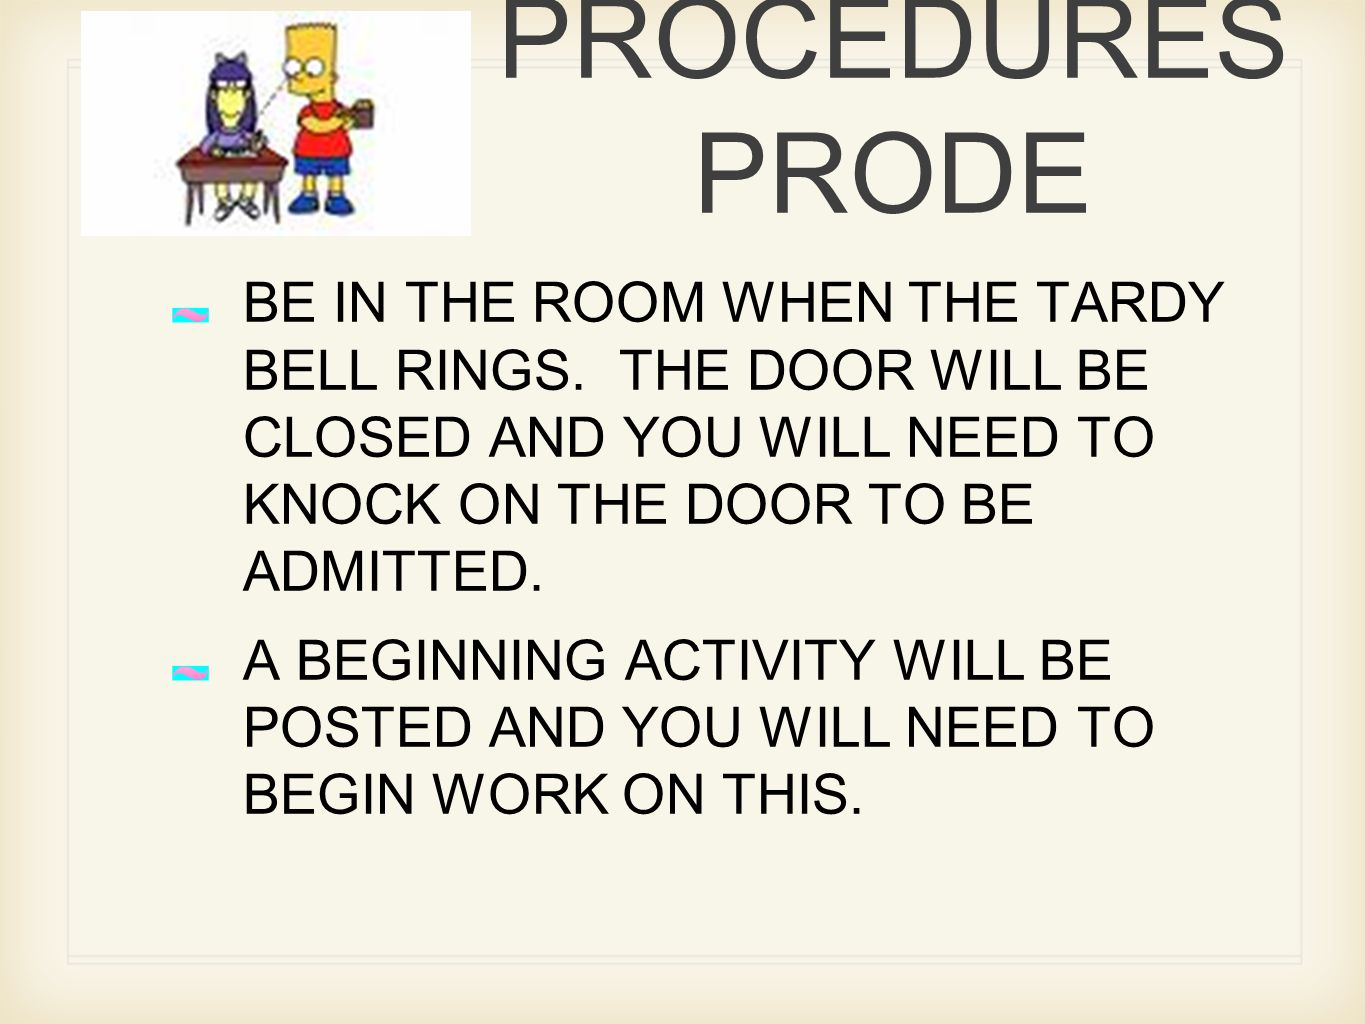 RULES AND PROCEDURES PRODE BE IN THE ROOM WHEN THE TARDY BELL RINGS. THE DOOR WILL BE CLOSED AND YOU WILL NEED TO KNOCK ON THE DOOR TO BE ADMITTED. A